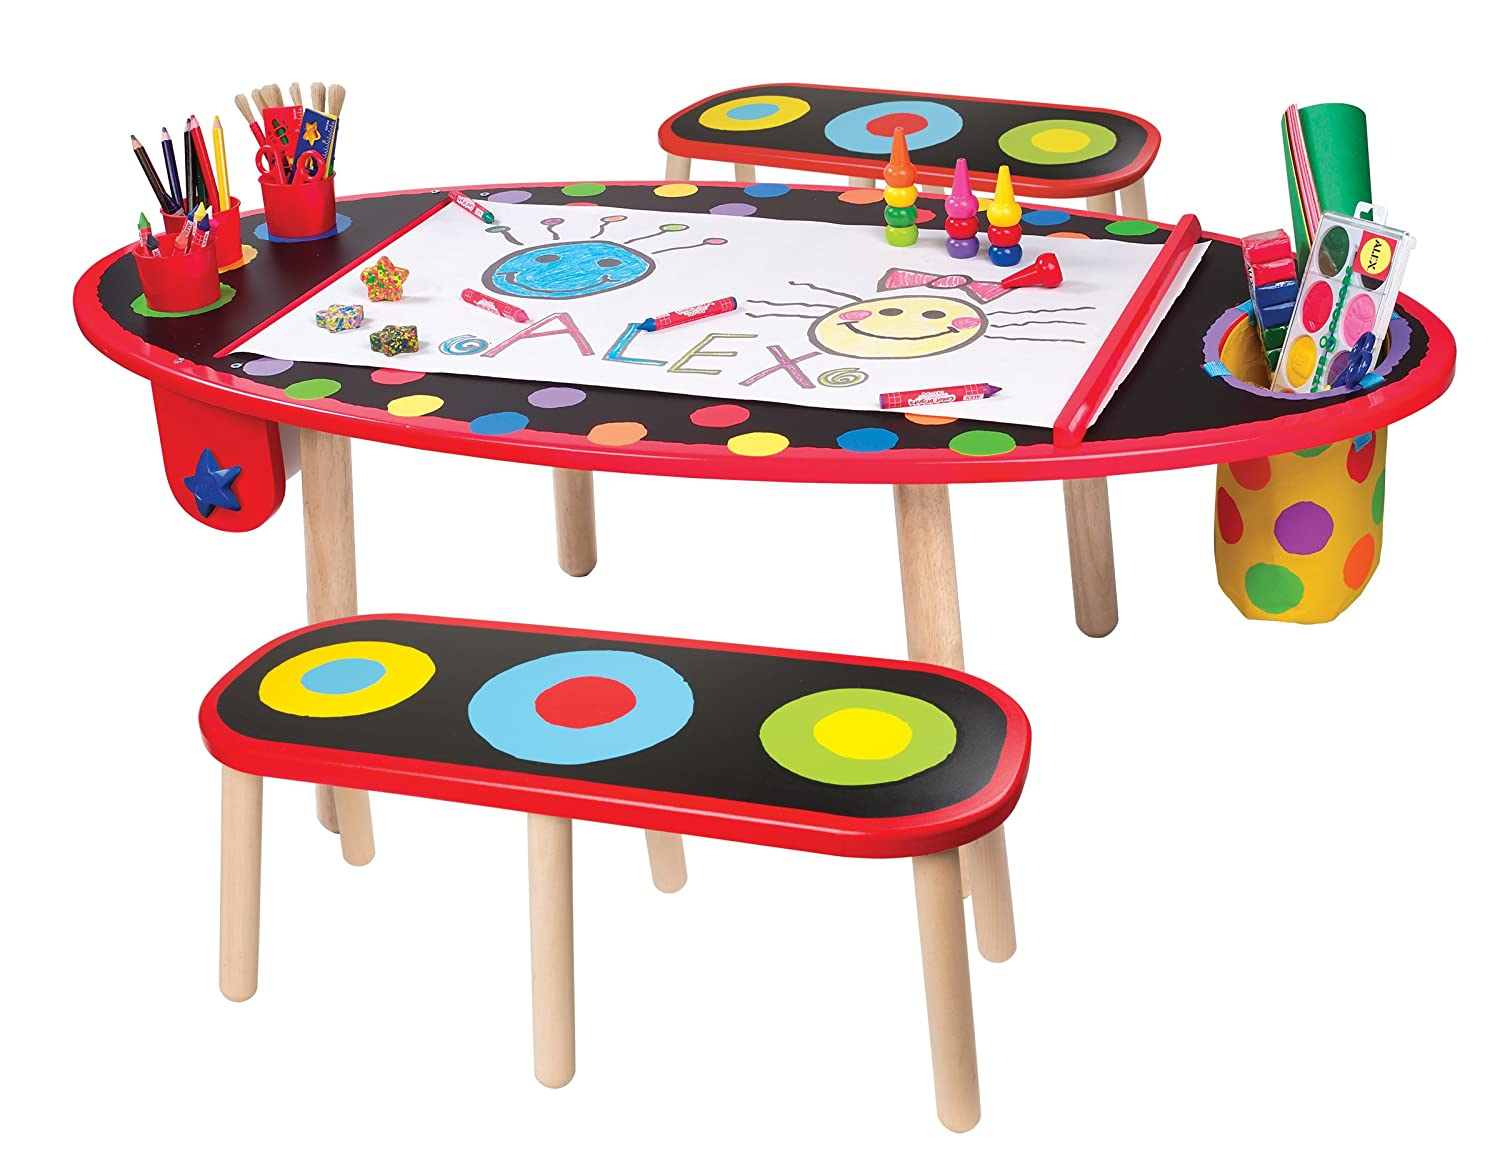 Toddler Art Desk With Storage  Webnuggetzm. Floating Desk Brackets. Red Accent Table. Used Metal Desks. Ikea Malm Drawers. Wireless Table Lamp. Large Farm Table. Metal Drum Table. Hp Help Desk